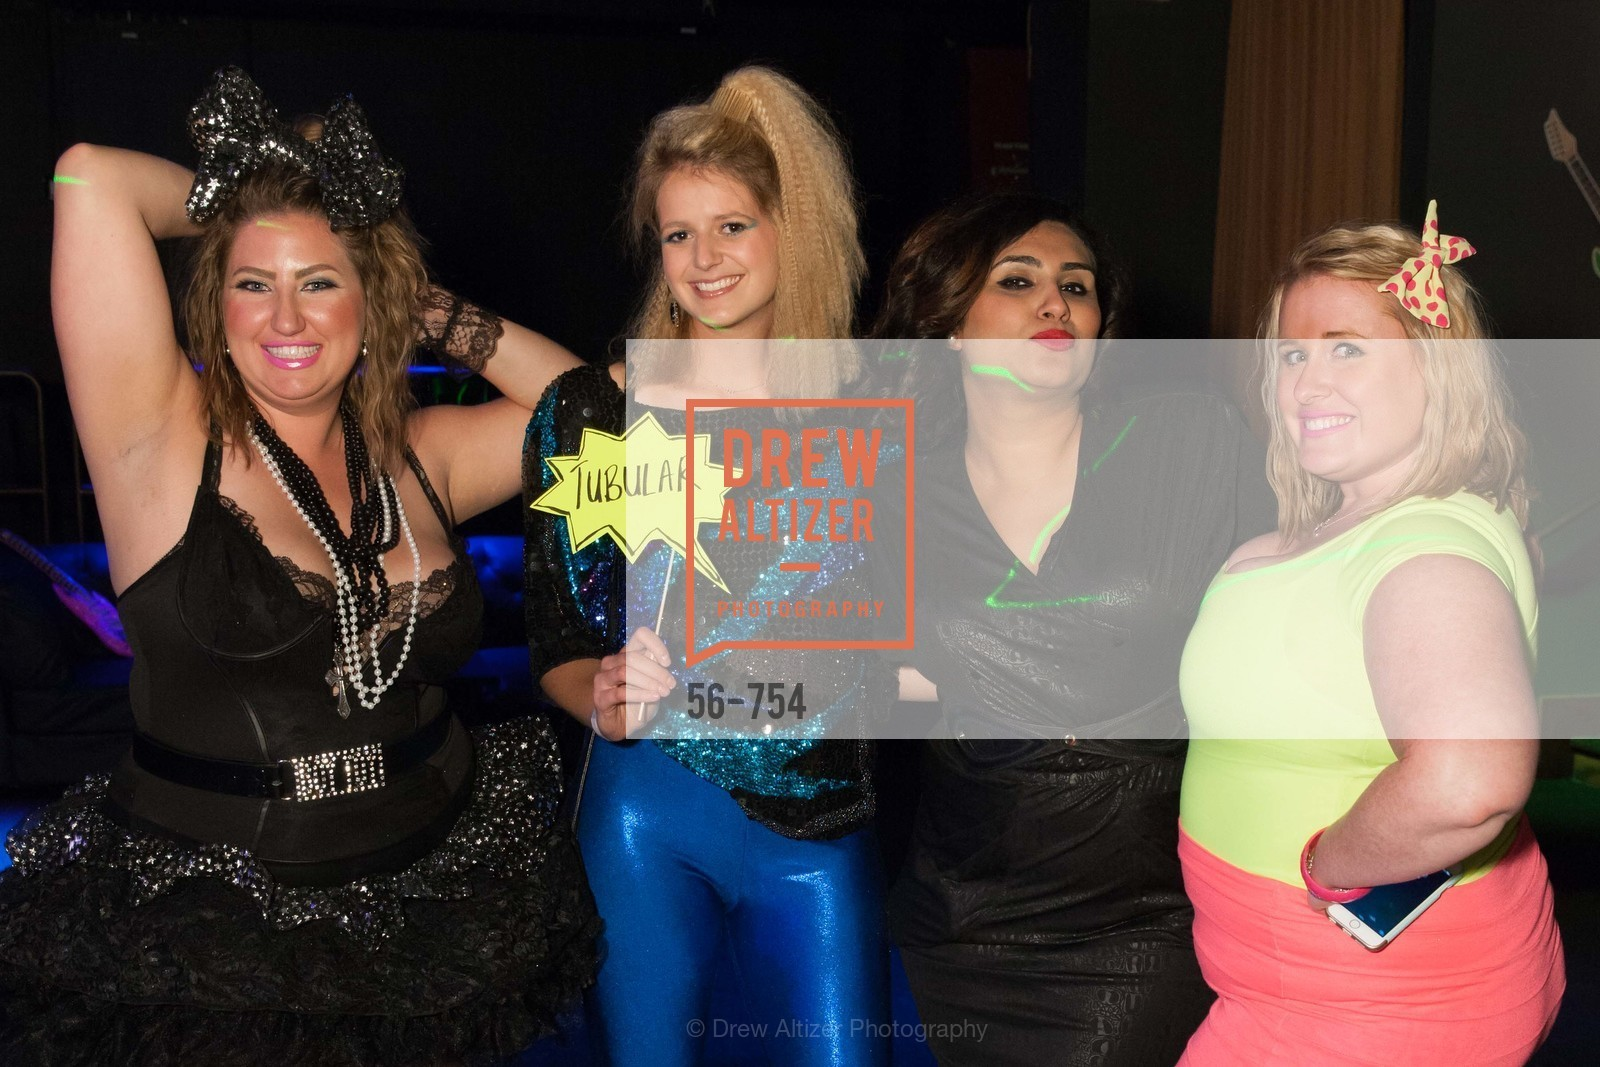 Annie Benisch, Laura Moir, Teesta Kaur, Eryn Golden, SPINSTERS OF SAN FRANCISCO Party Like It's 1985 Charity Party, US, May 29th, 2015,Drew Altizer, Drew Altizer Photography, full-service agency, private events, San Francisco photographer, photographer california